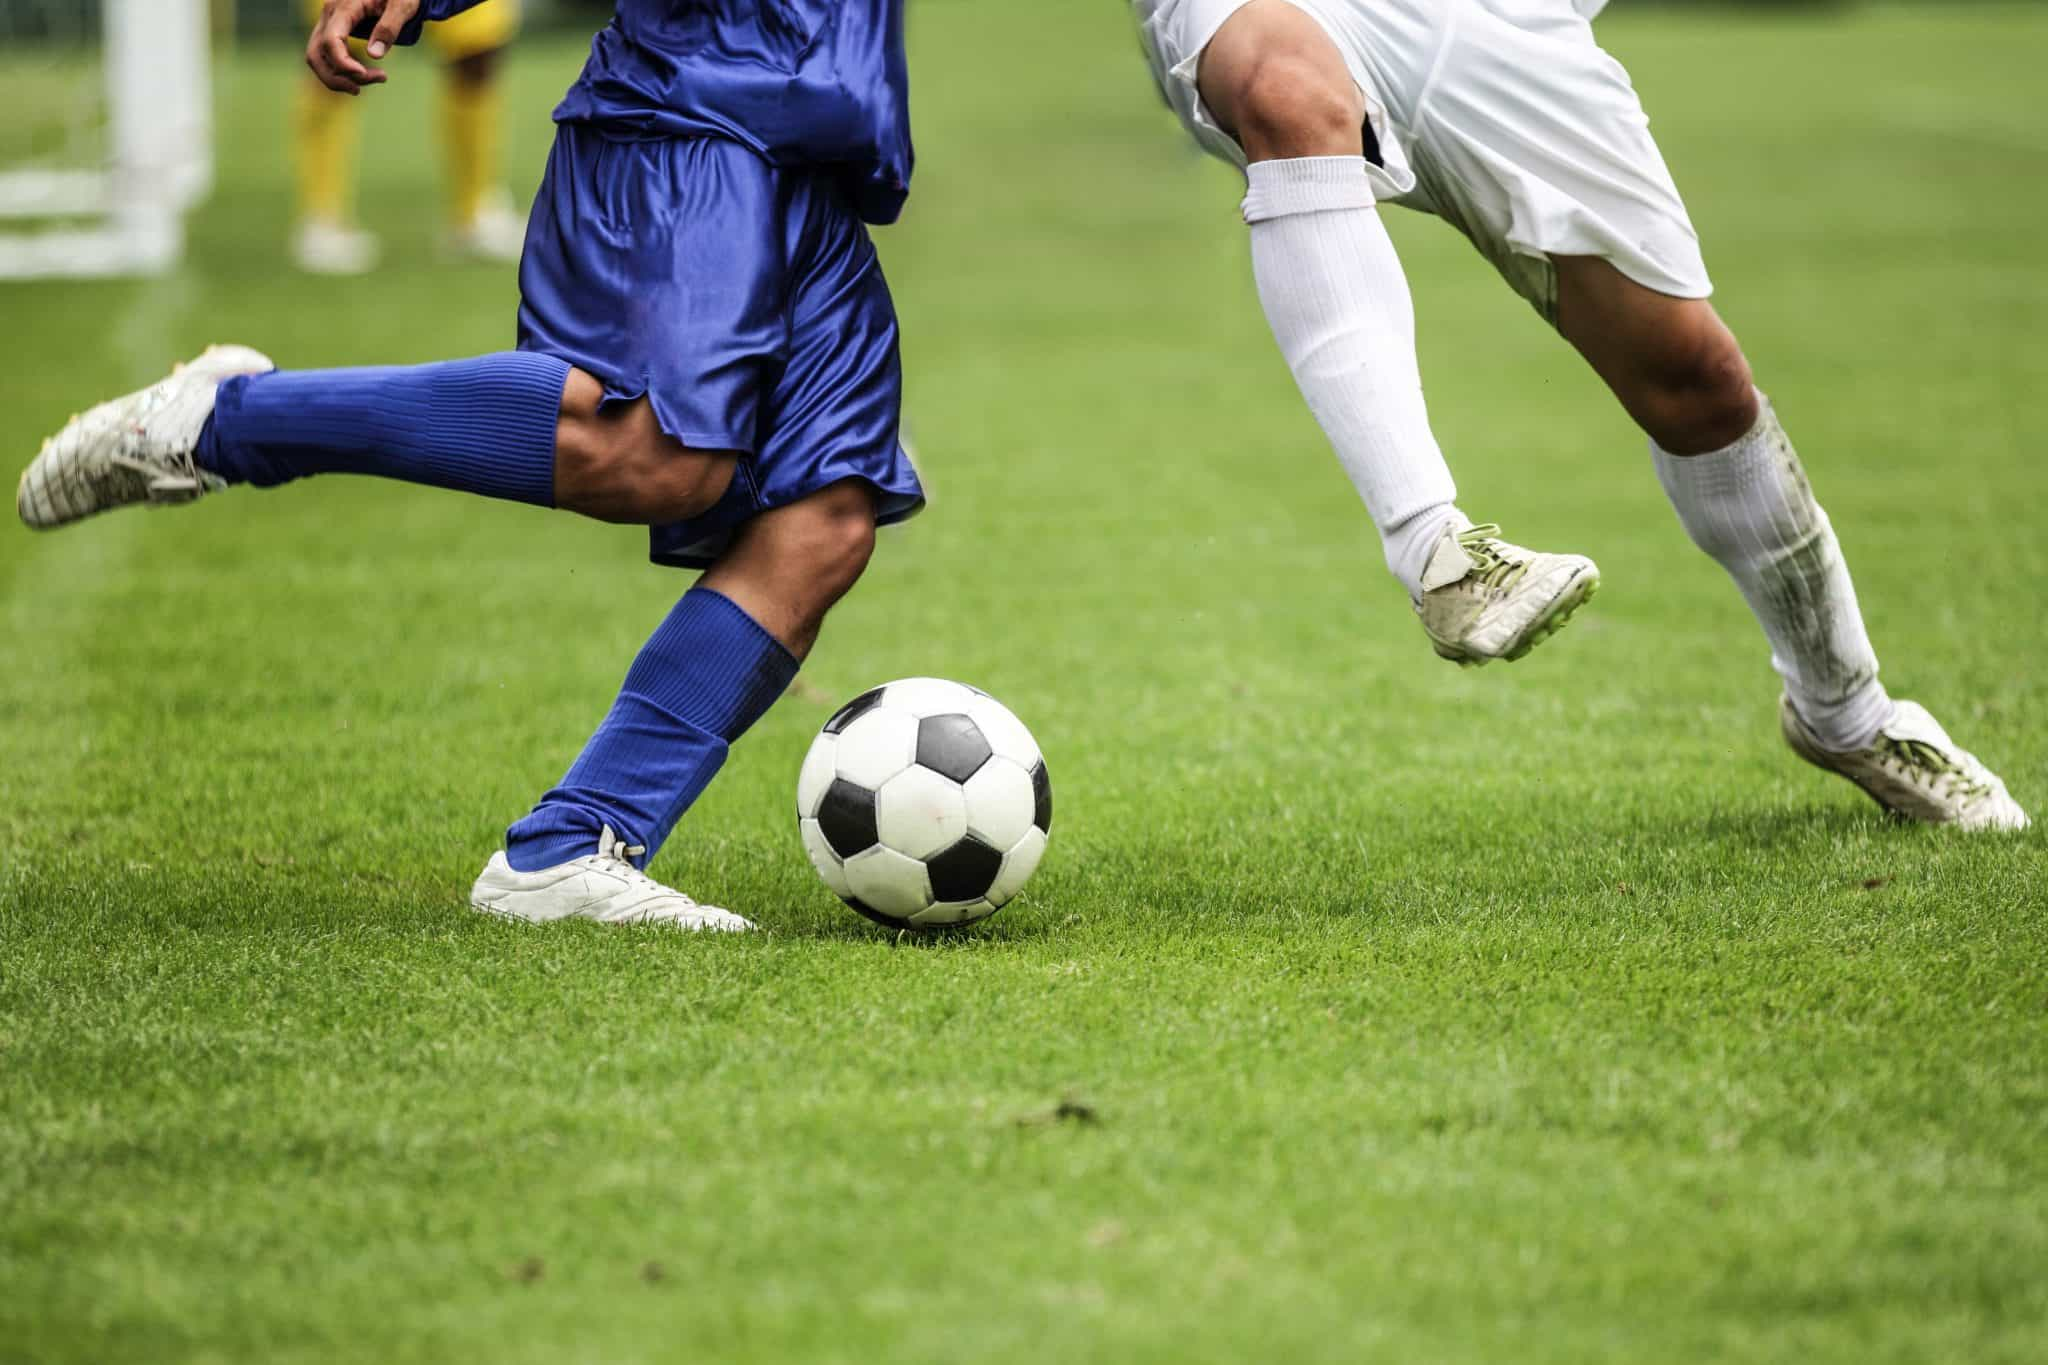 How to Defend in Soccer - A Soccer Player's Complete Guide